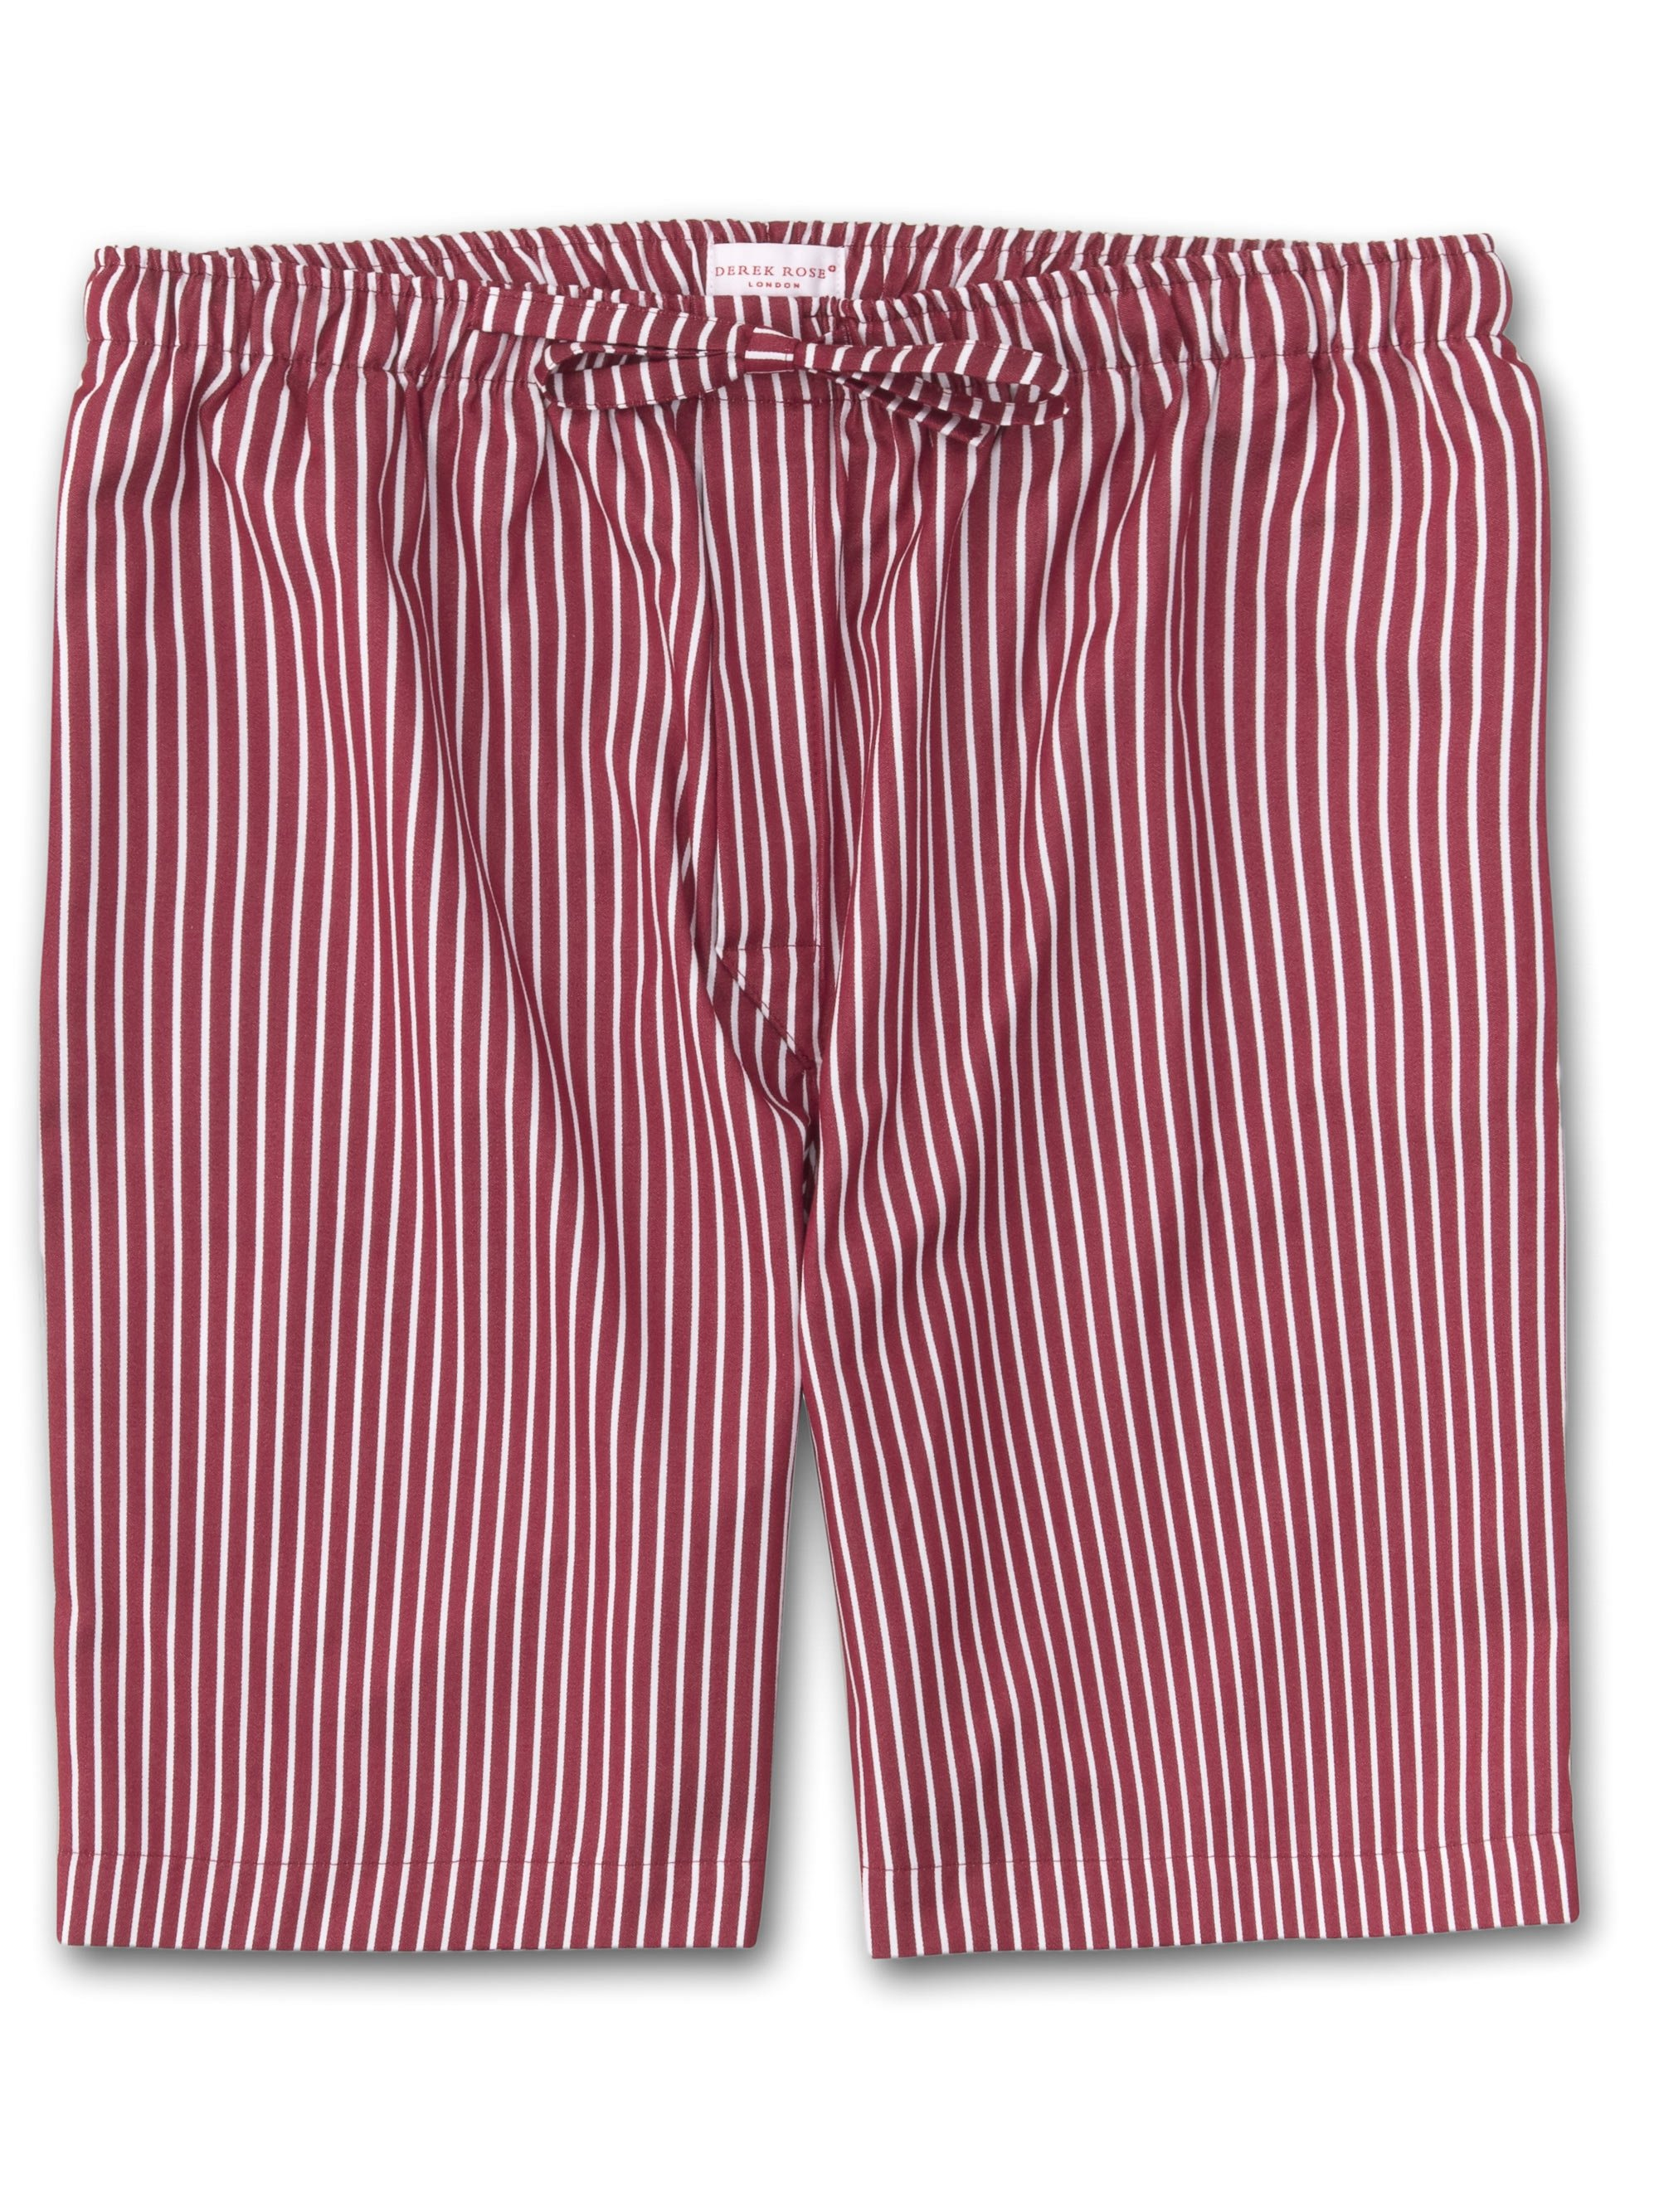 Men's Lounge Shorts Royal 215 Cotton Satin Stripe Red